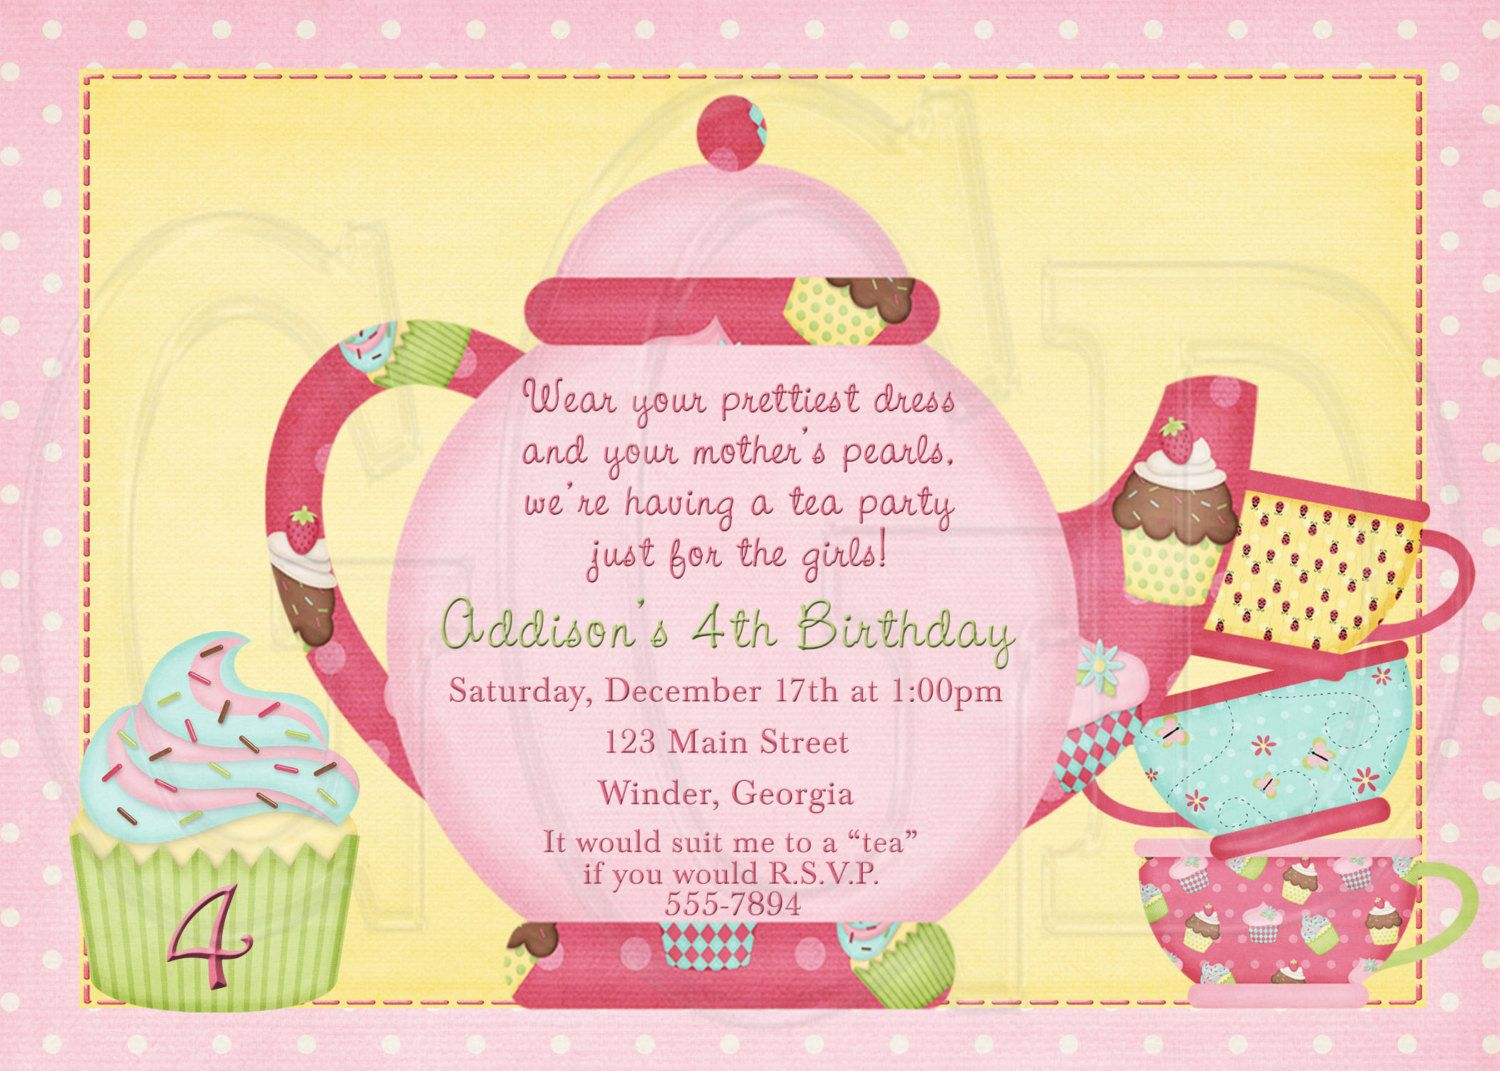 Tea Party Invitation Birthday Dress-up Party | Parties | Pinterest ...